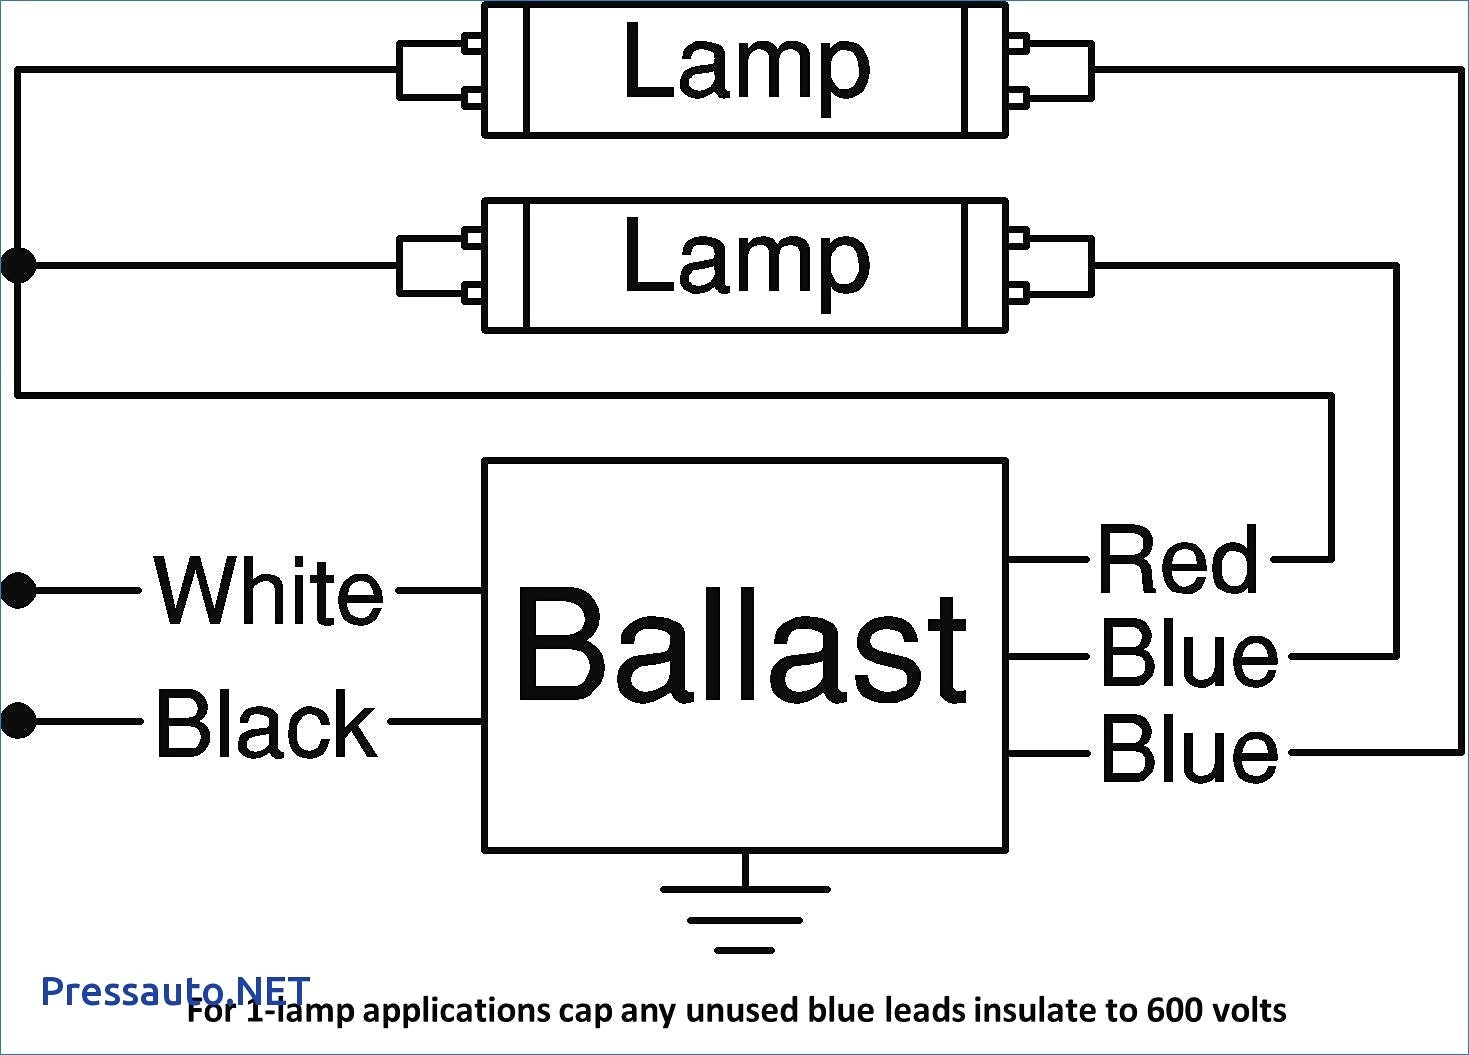 Fluorescent Light Wiring Diagram For Ballast Inspirational Lampu Kalimantang Marvelous 4 Bulb 480 New Lamp Adorable